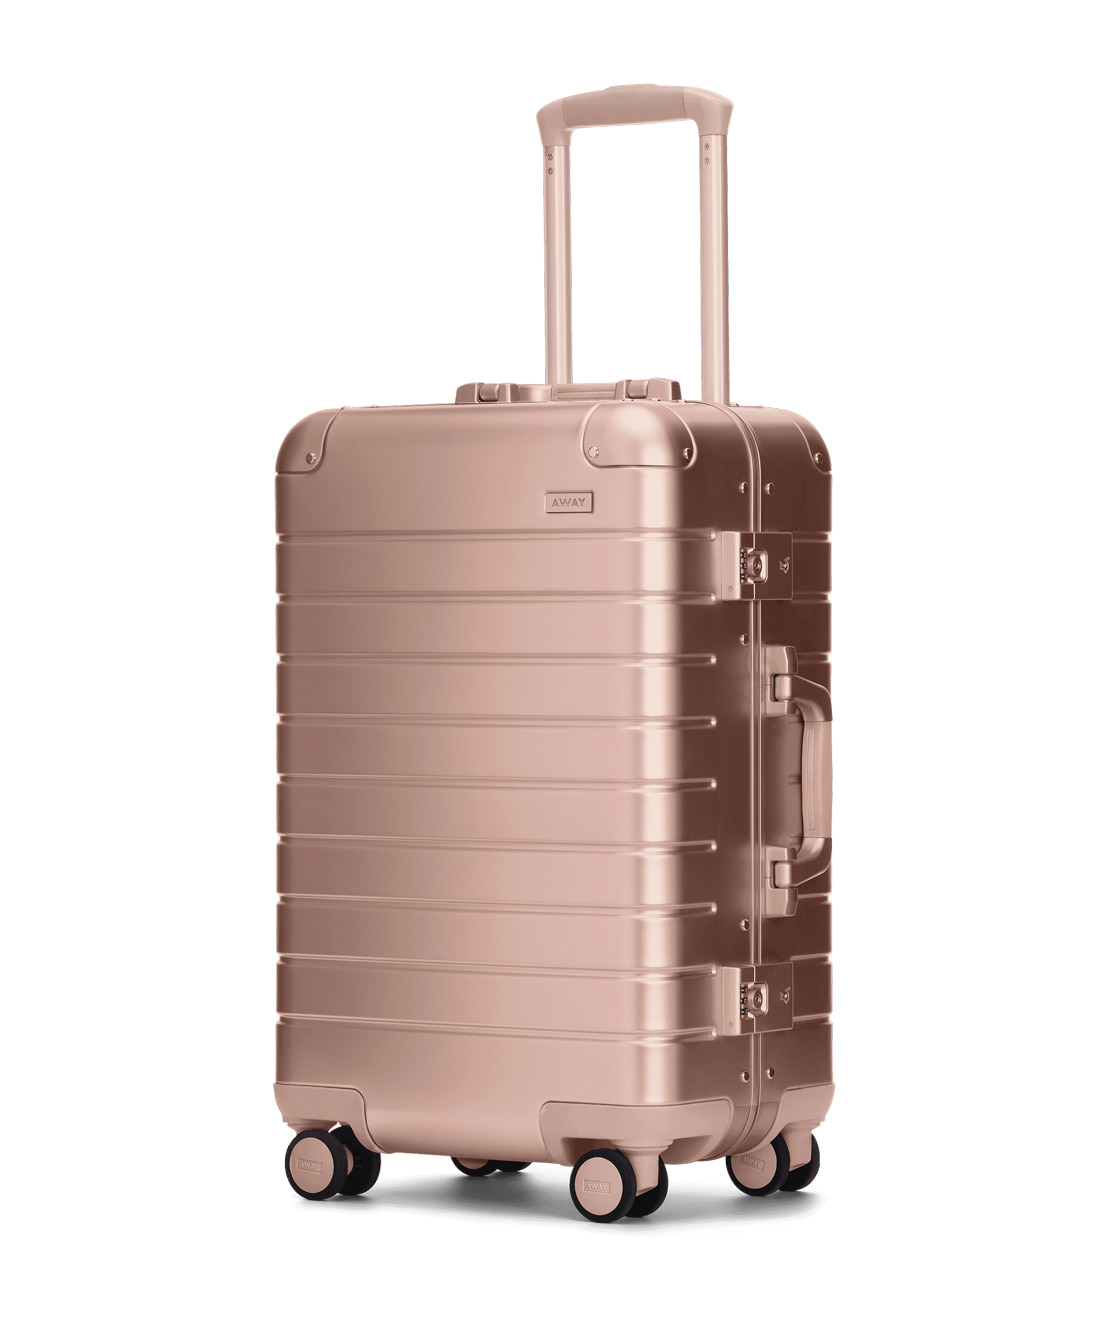 Away Carry-On Aluminum Edition